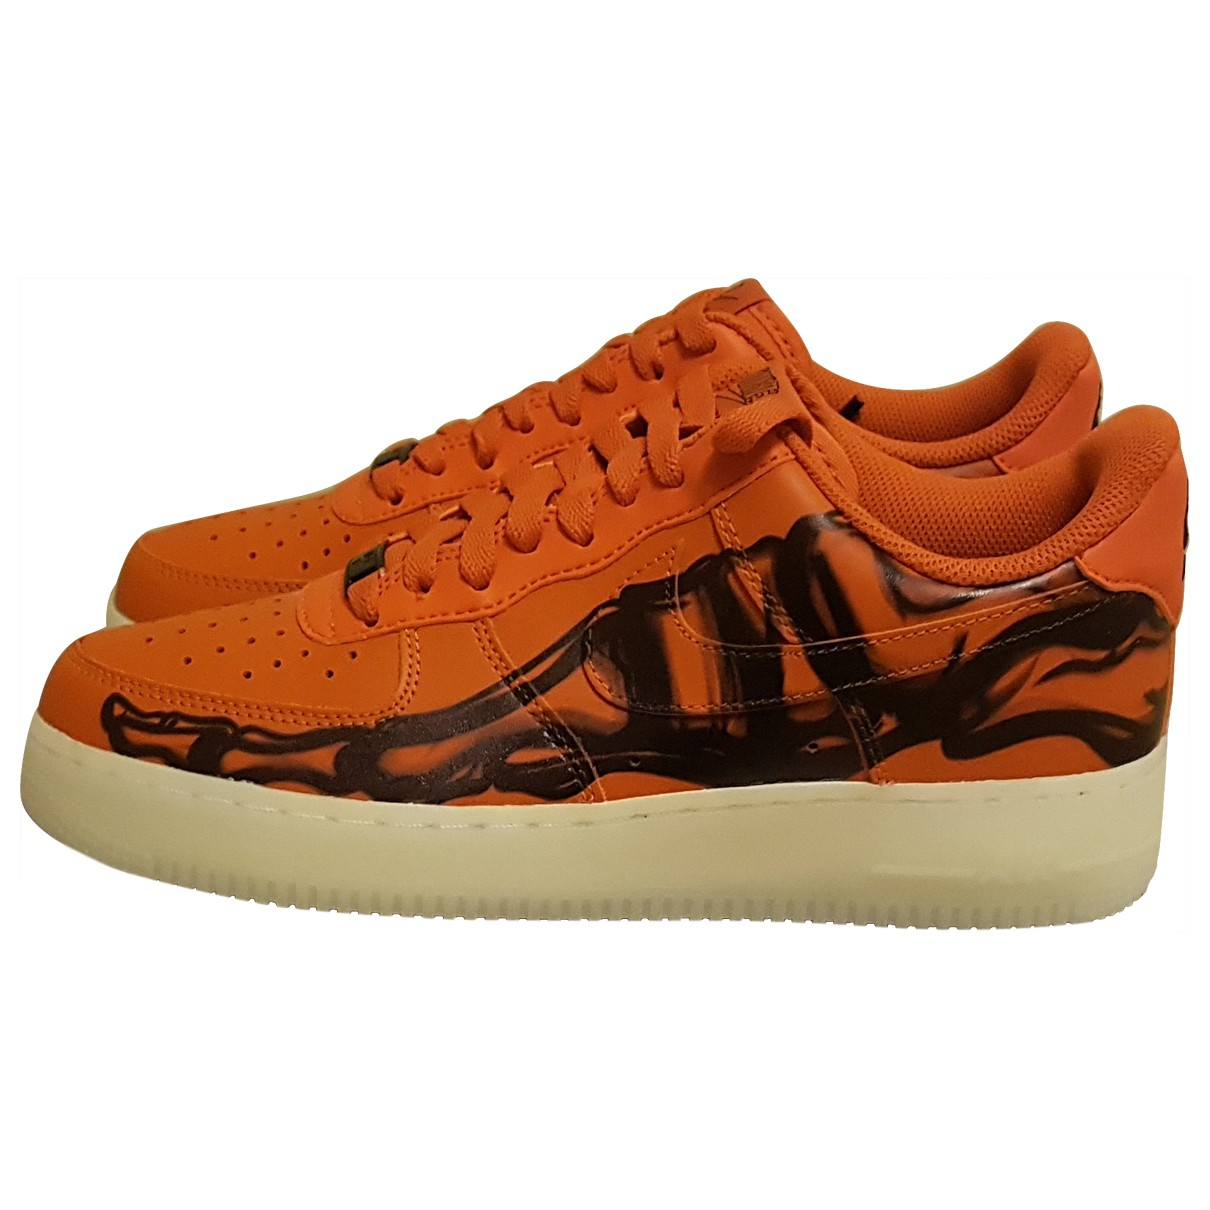 Nike Air Force 1 Orange Rubber Trainers for Men 41 EU